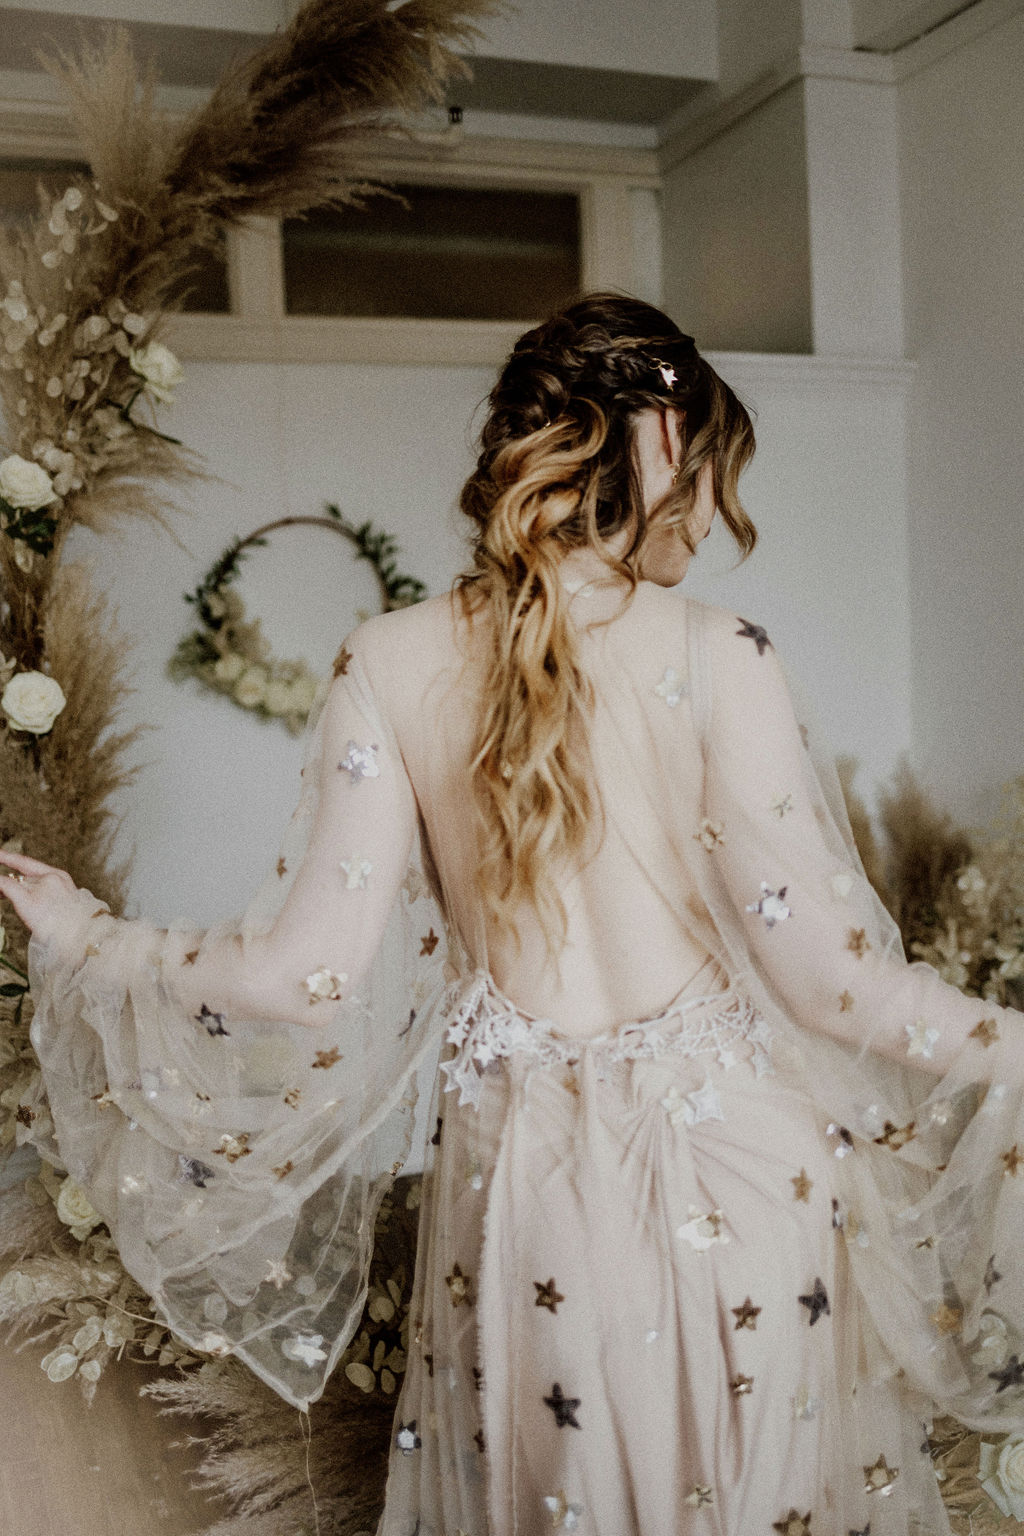 Bride wearing Flutter dress covered in gold stars with flowing sleeves and sheer back